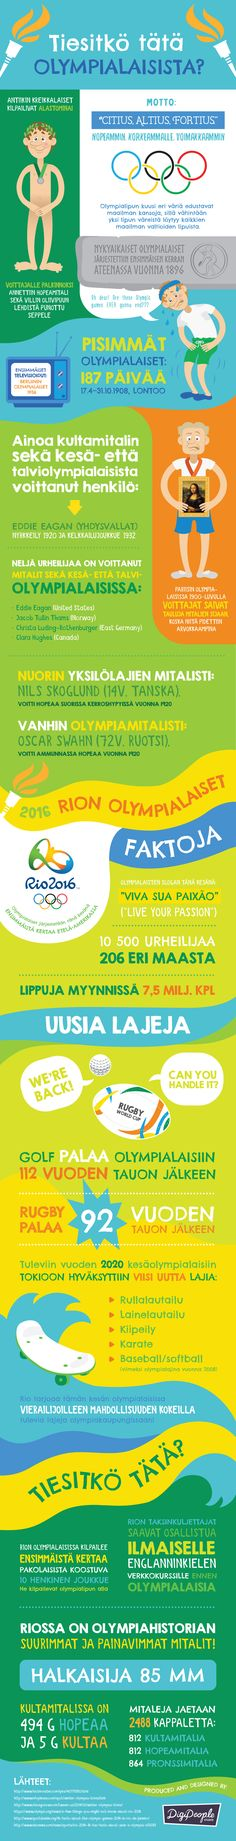 Olympialaiset-IG-Rio-version_08082016-v1-uudet-värit New Things To Learn, Physical Education, Olympic Games, Olympics, Physics, Rio, Infographic, Teaching, School